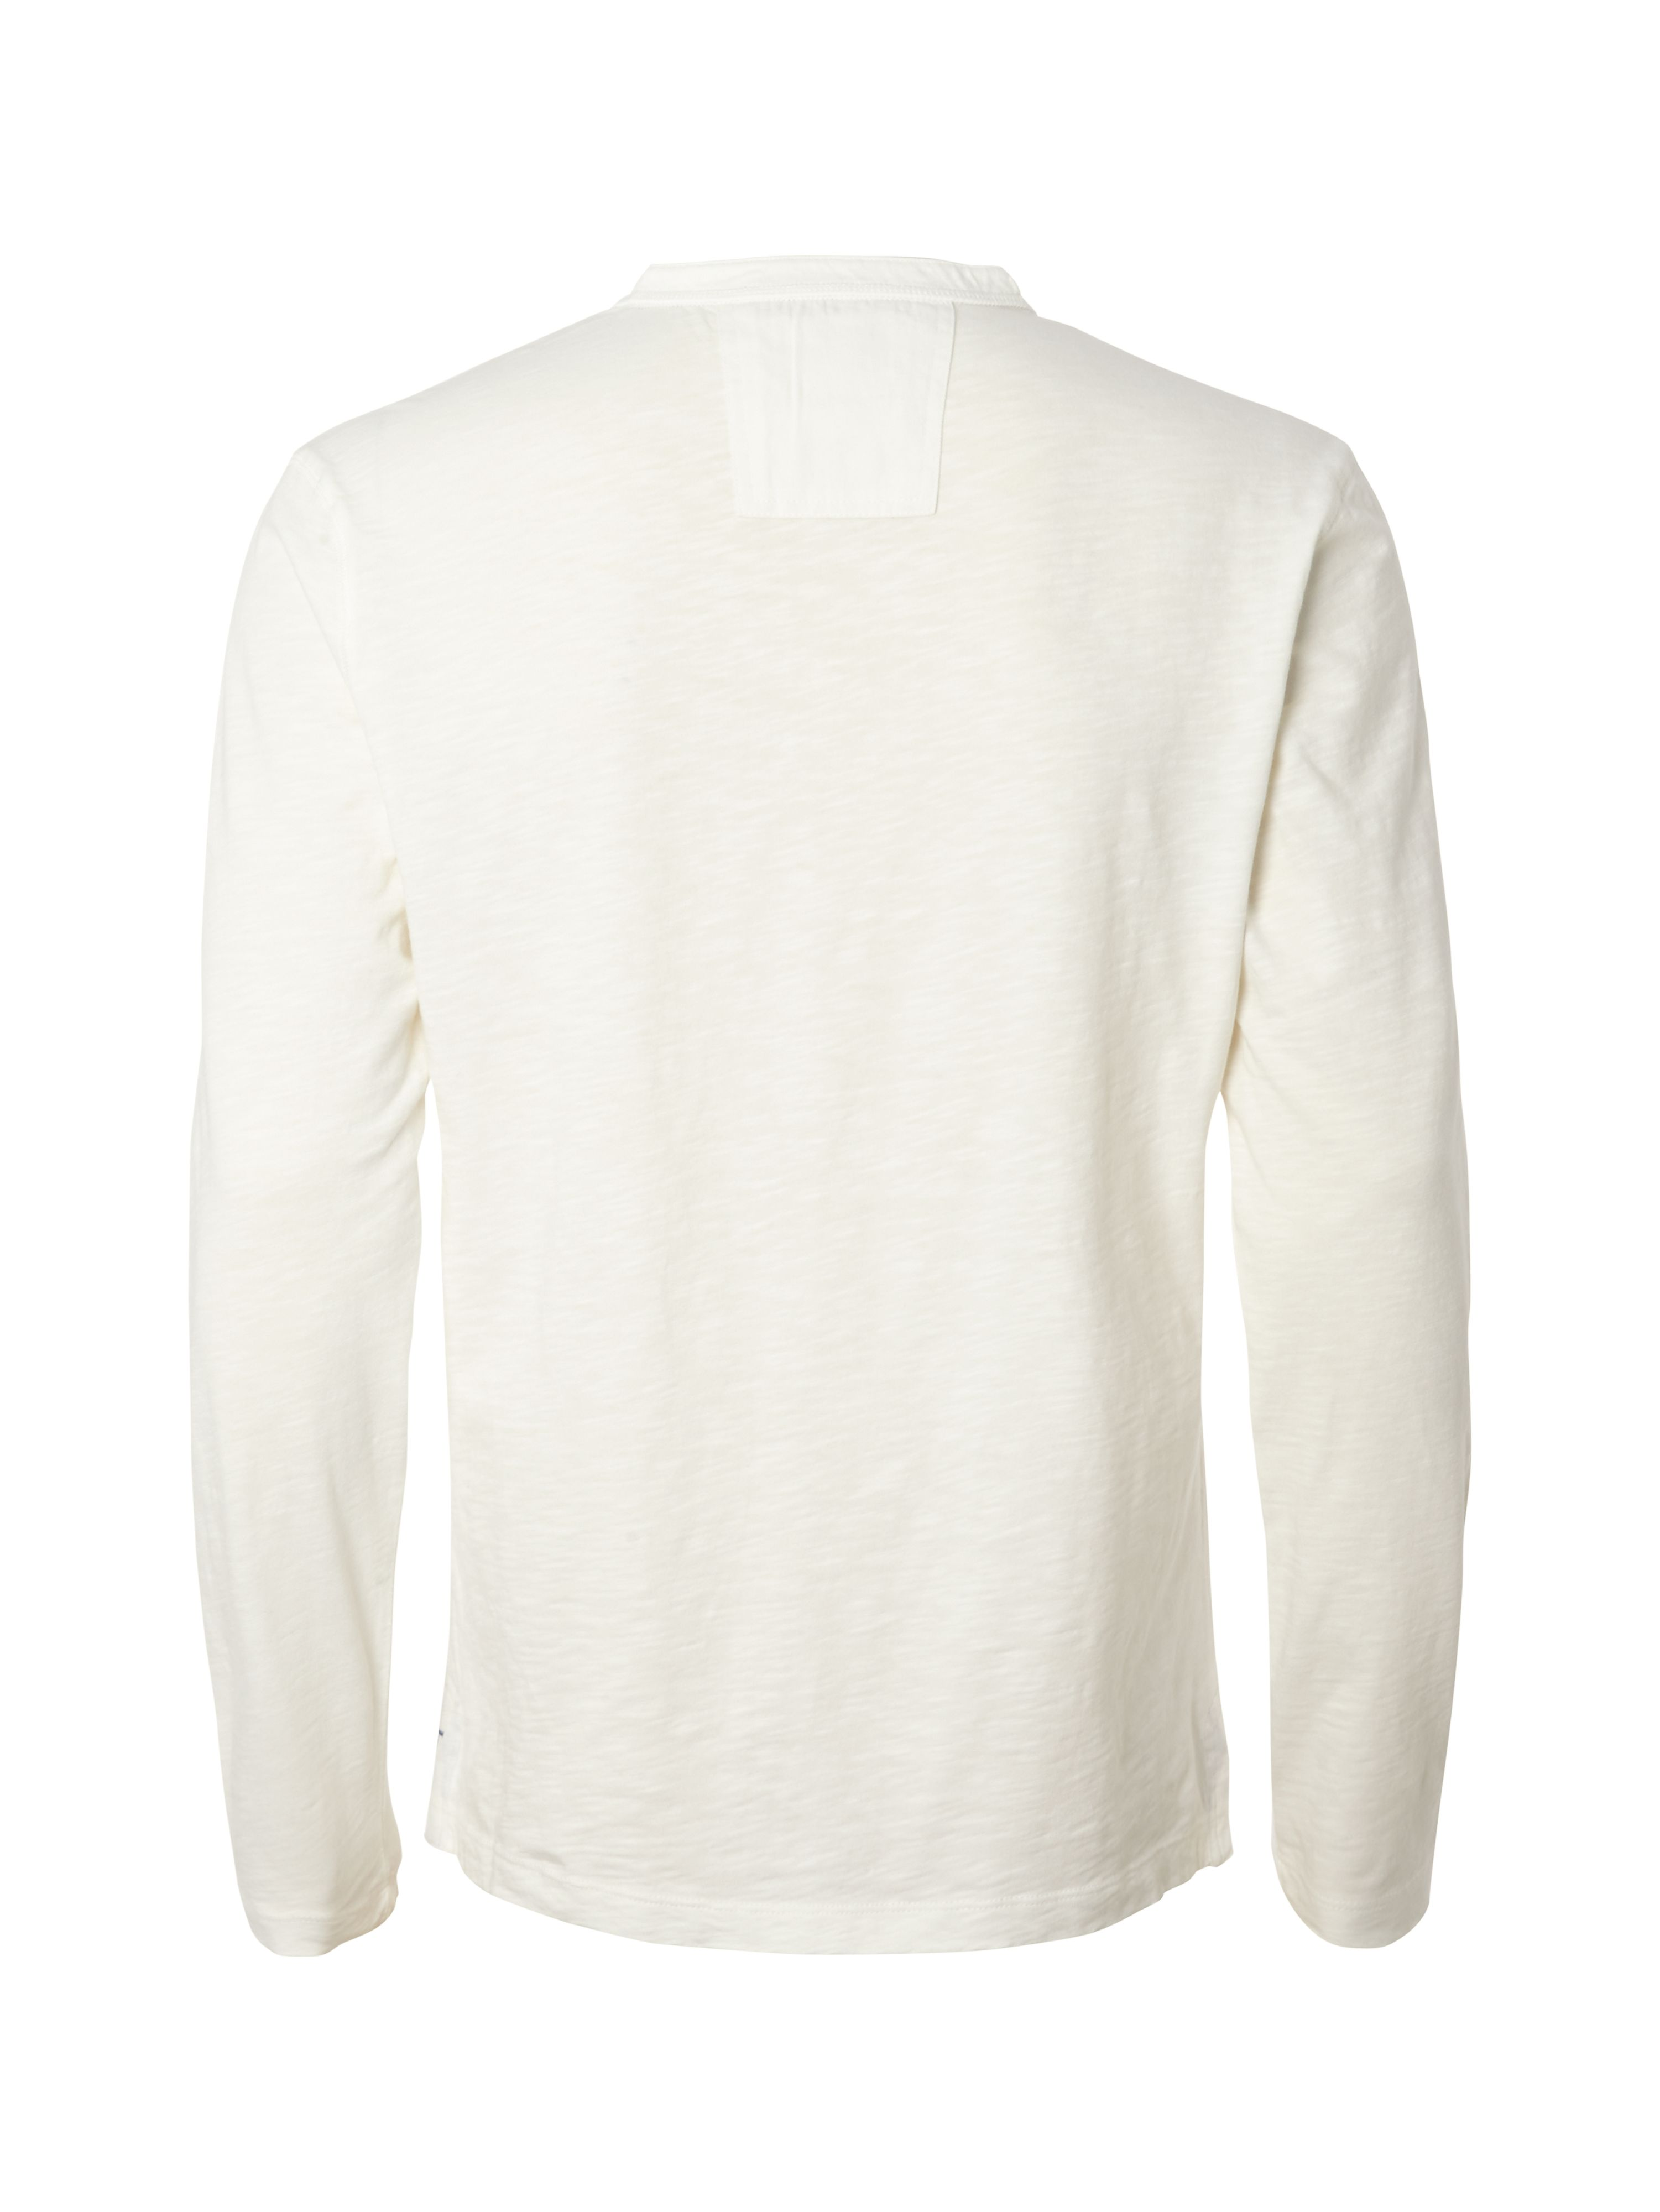 Encore long sleeve T-shirt